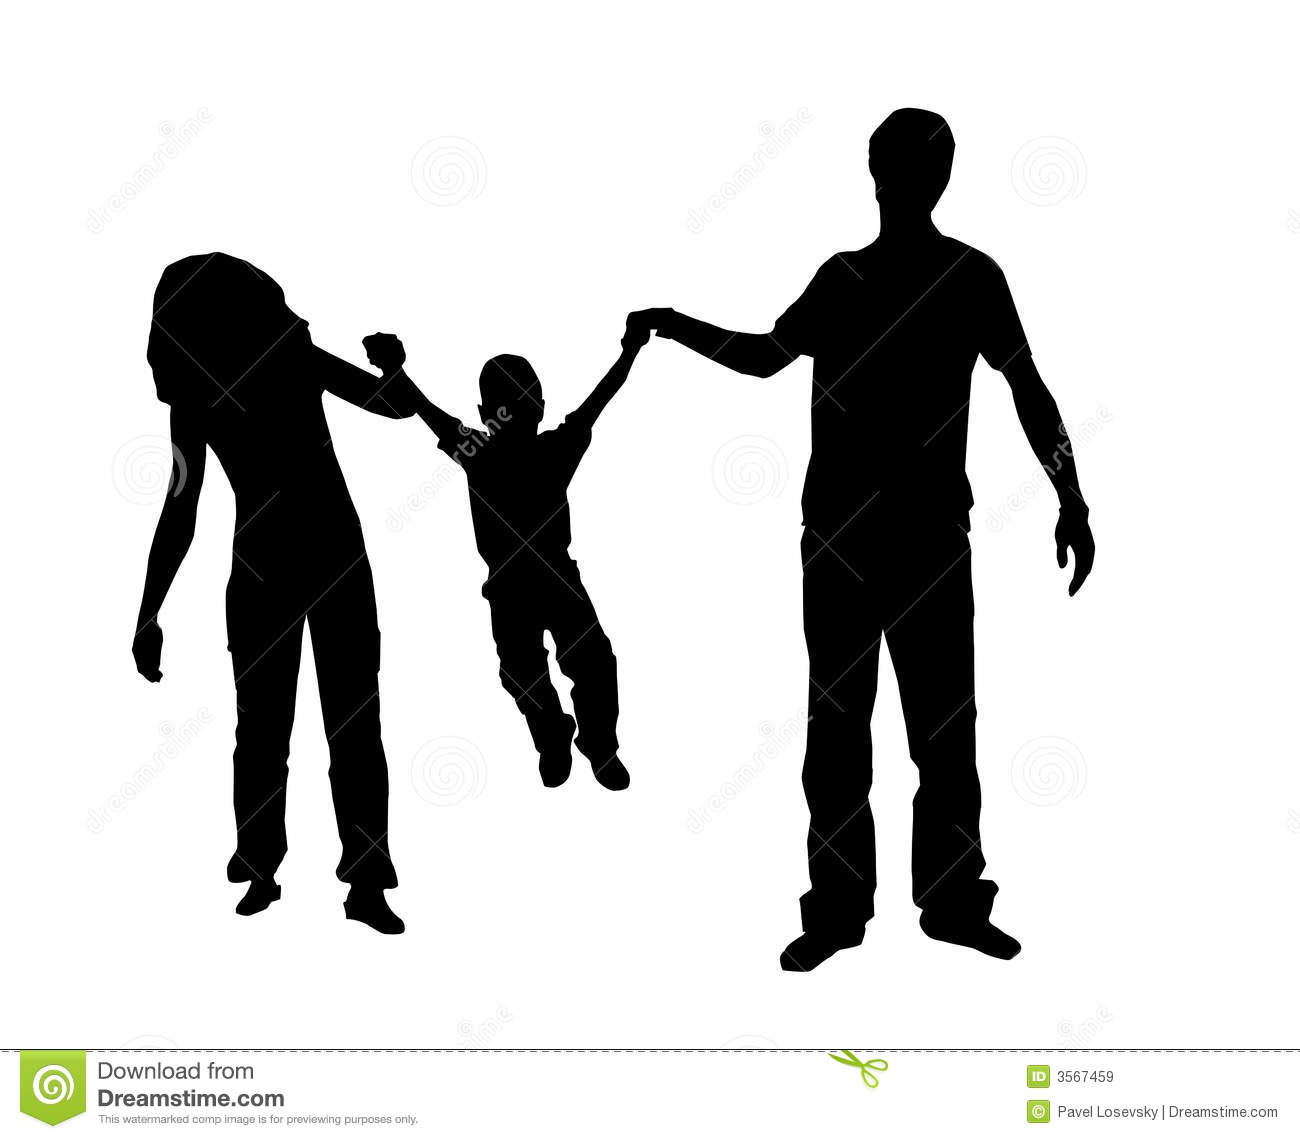 Family Silhouette Royalty Free Stock Images - Image: 3567459